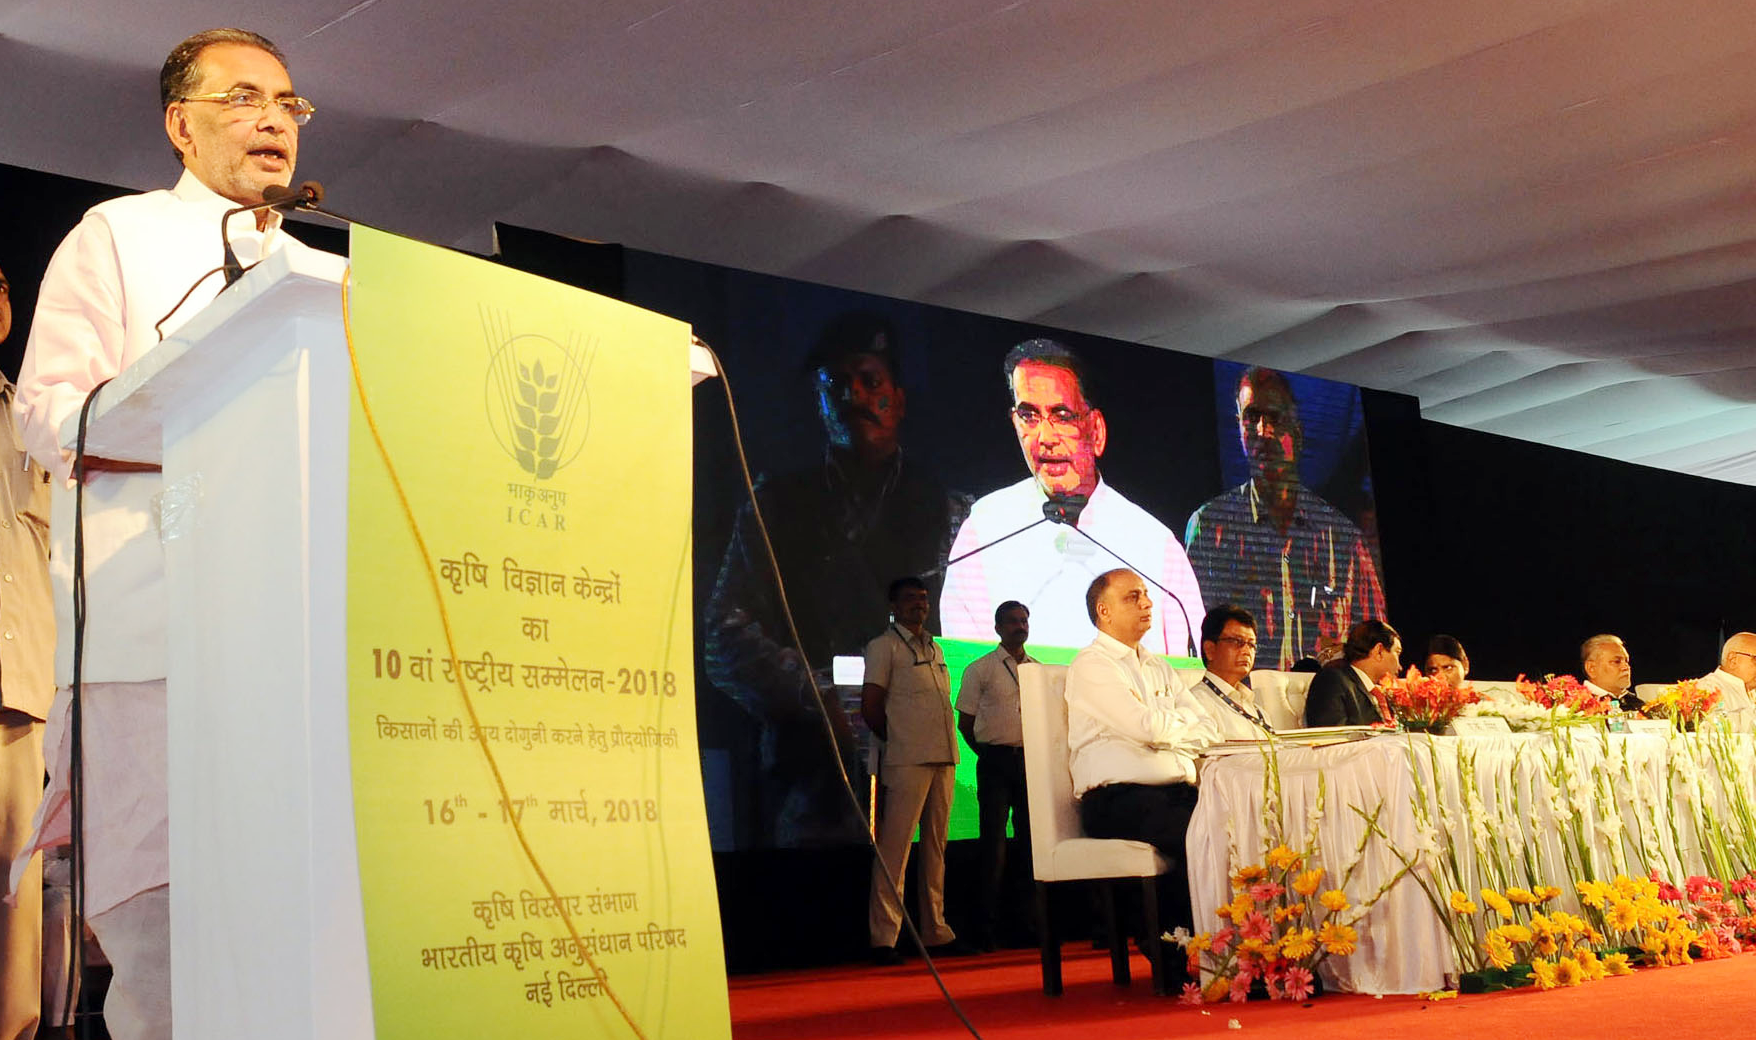 Mela leads to fruitful exchange between farmers and scientists: Singh